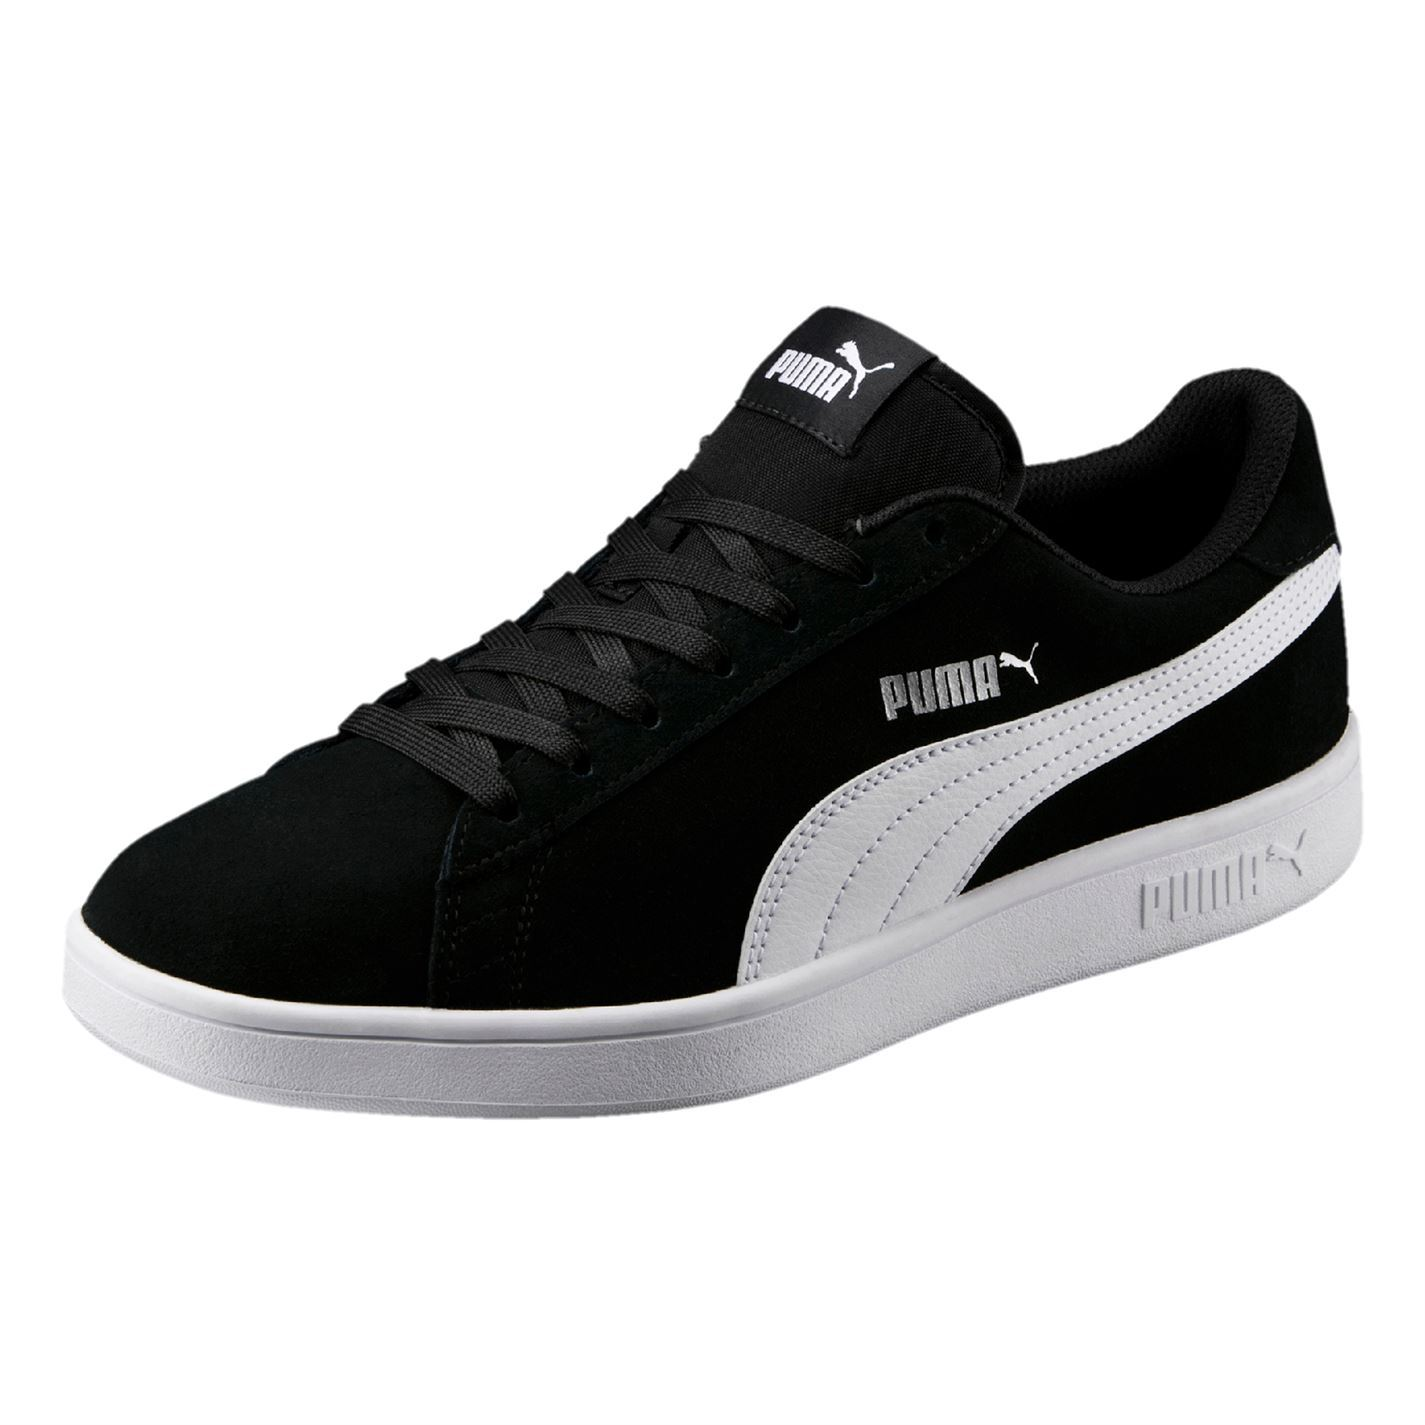 Puma-Smash-V2-Suede-Trainers-Mens-Shoes-Sneakers-Athleisure-Footwear thumbnail 7